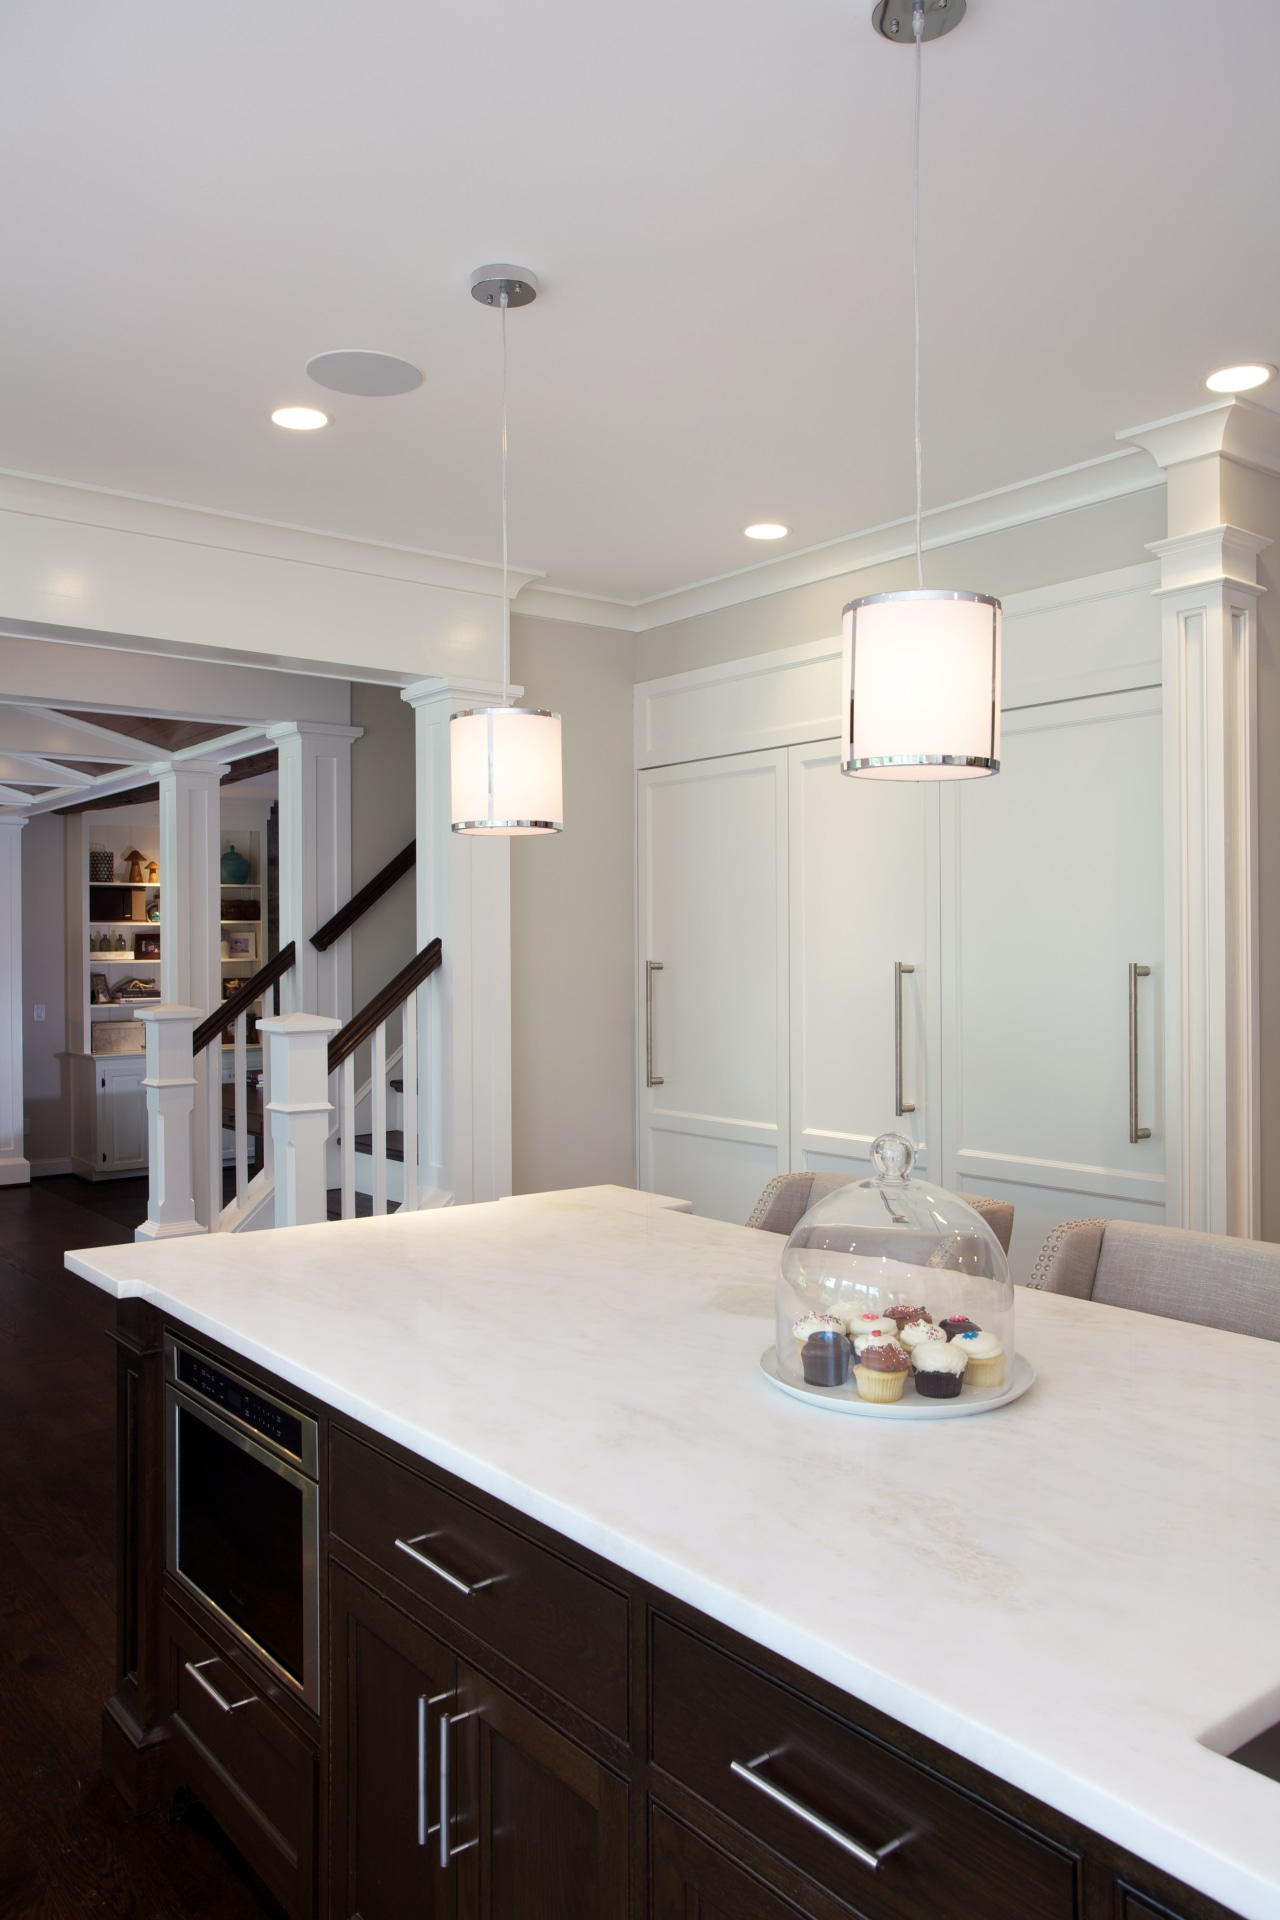 The cabinetry was painted to match the existing cabinetry, ceiling, countertop, cuisine classique, floor, flooring, hardwood, home, interior design, kitchen, light fixture, lighting, room, gray